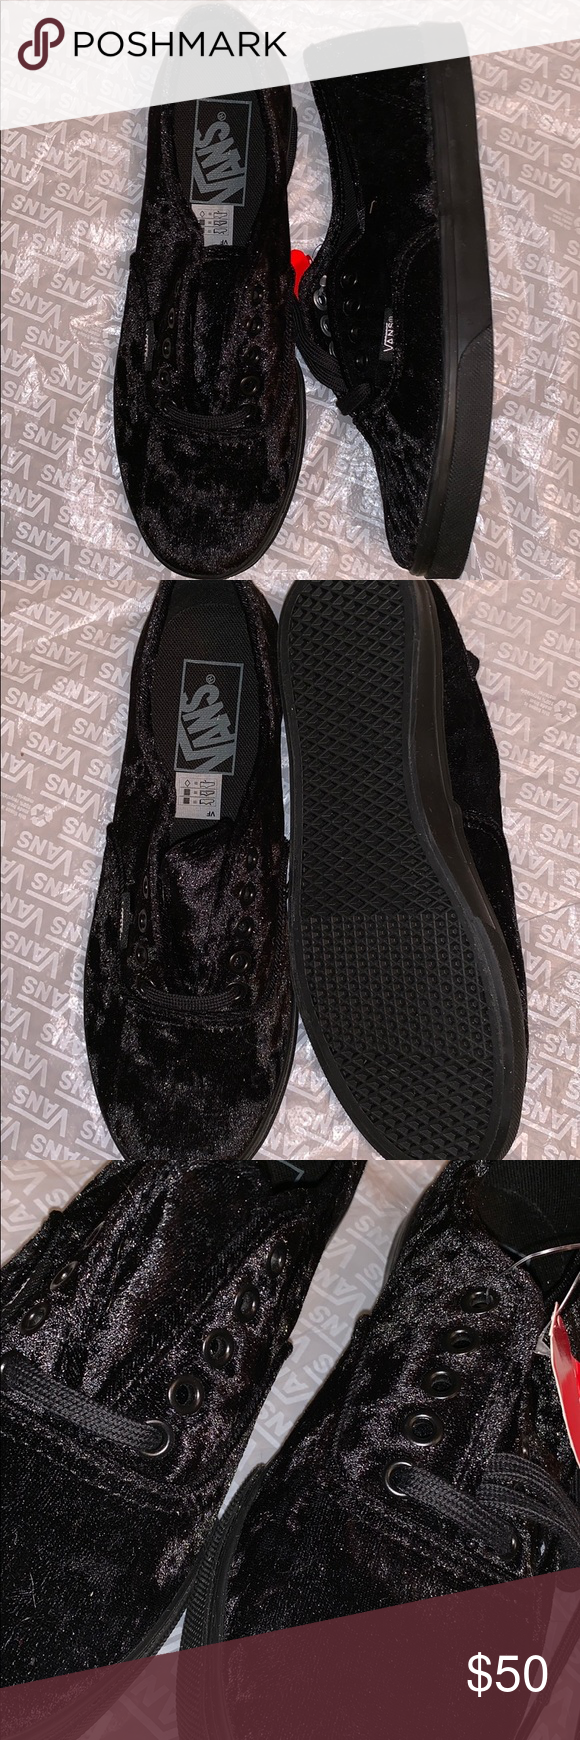 e1df40b0614465 Authentic lo pro velvet Vans Authentic low cut lace up low pro vans Thin  waffle sole